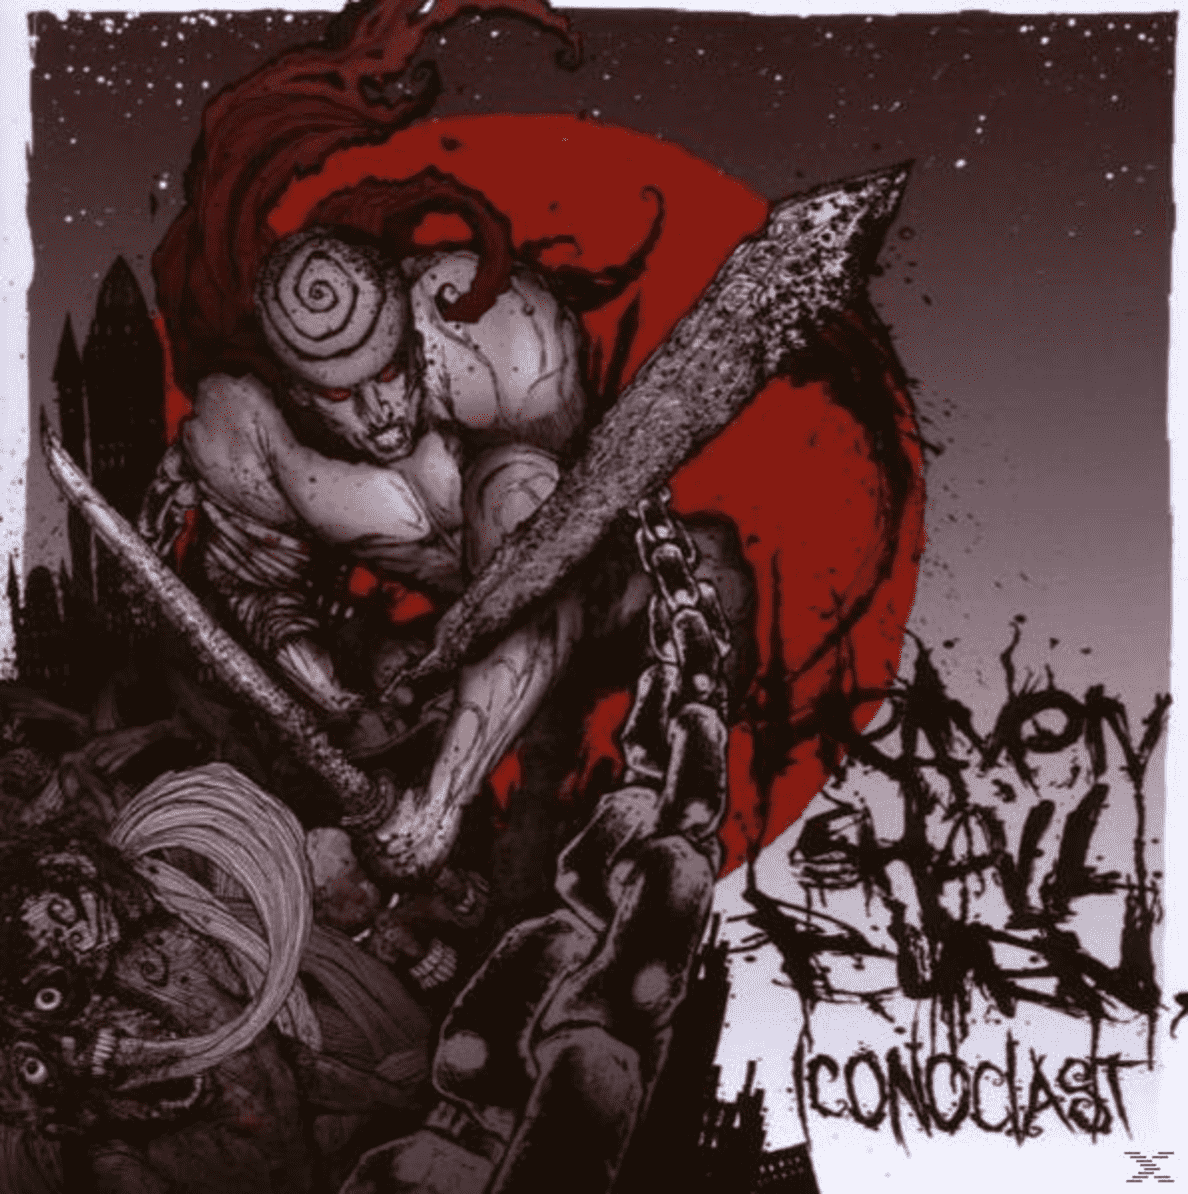 Iconoclast (Part One: The Final Resistance) Heaven Shall Burn auf CD